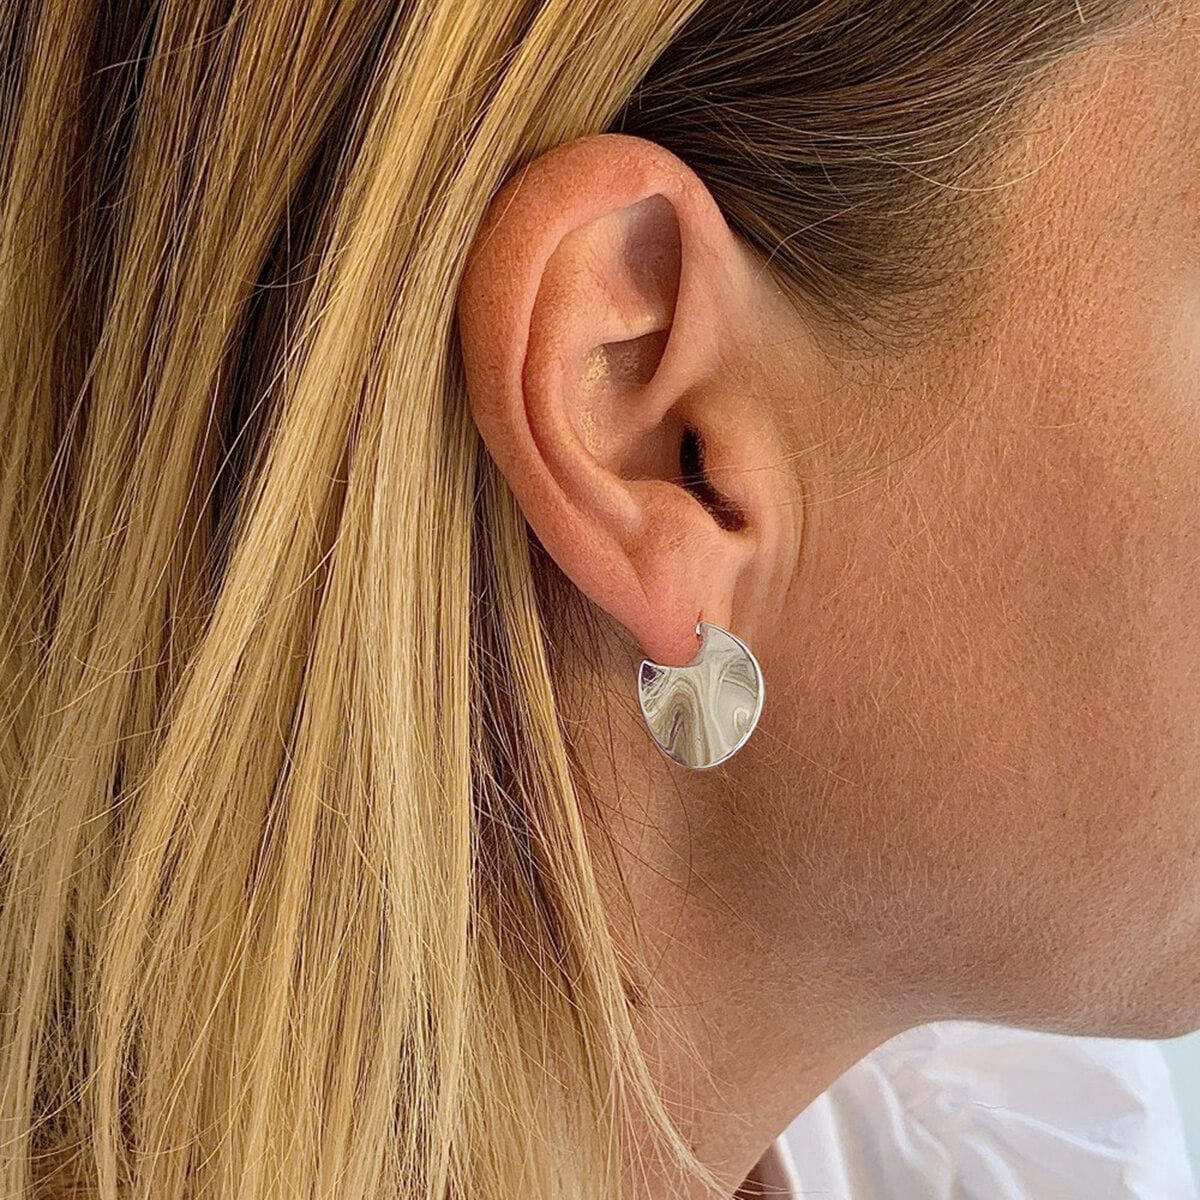 phoebe-round-earrings-silver